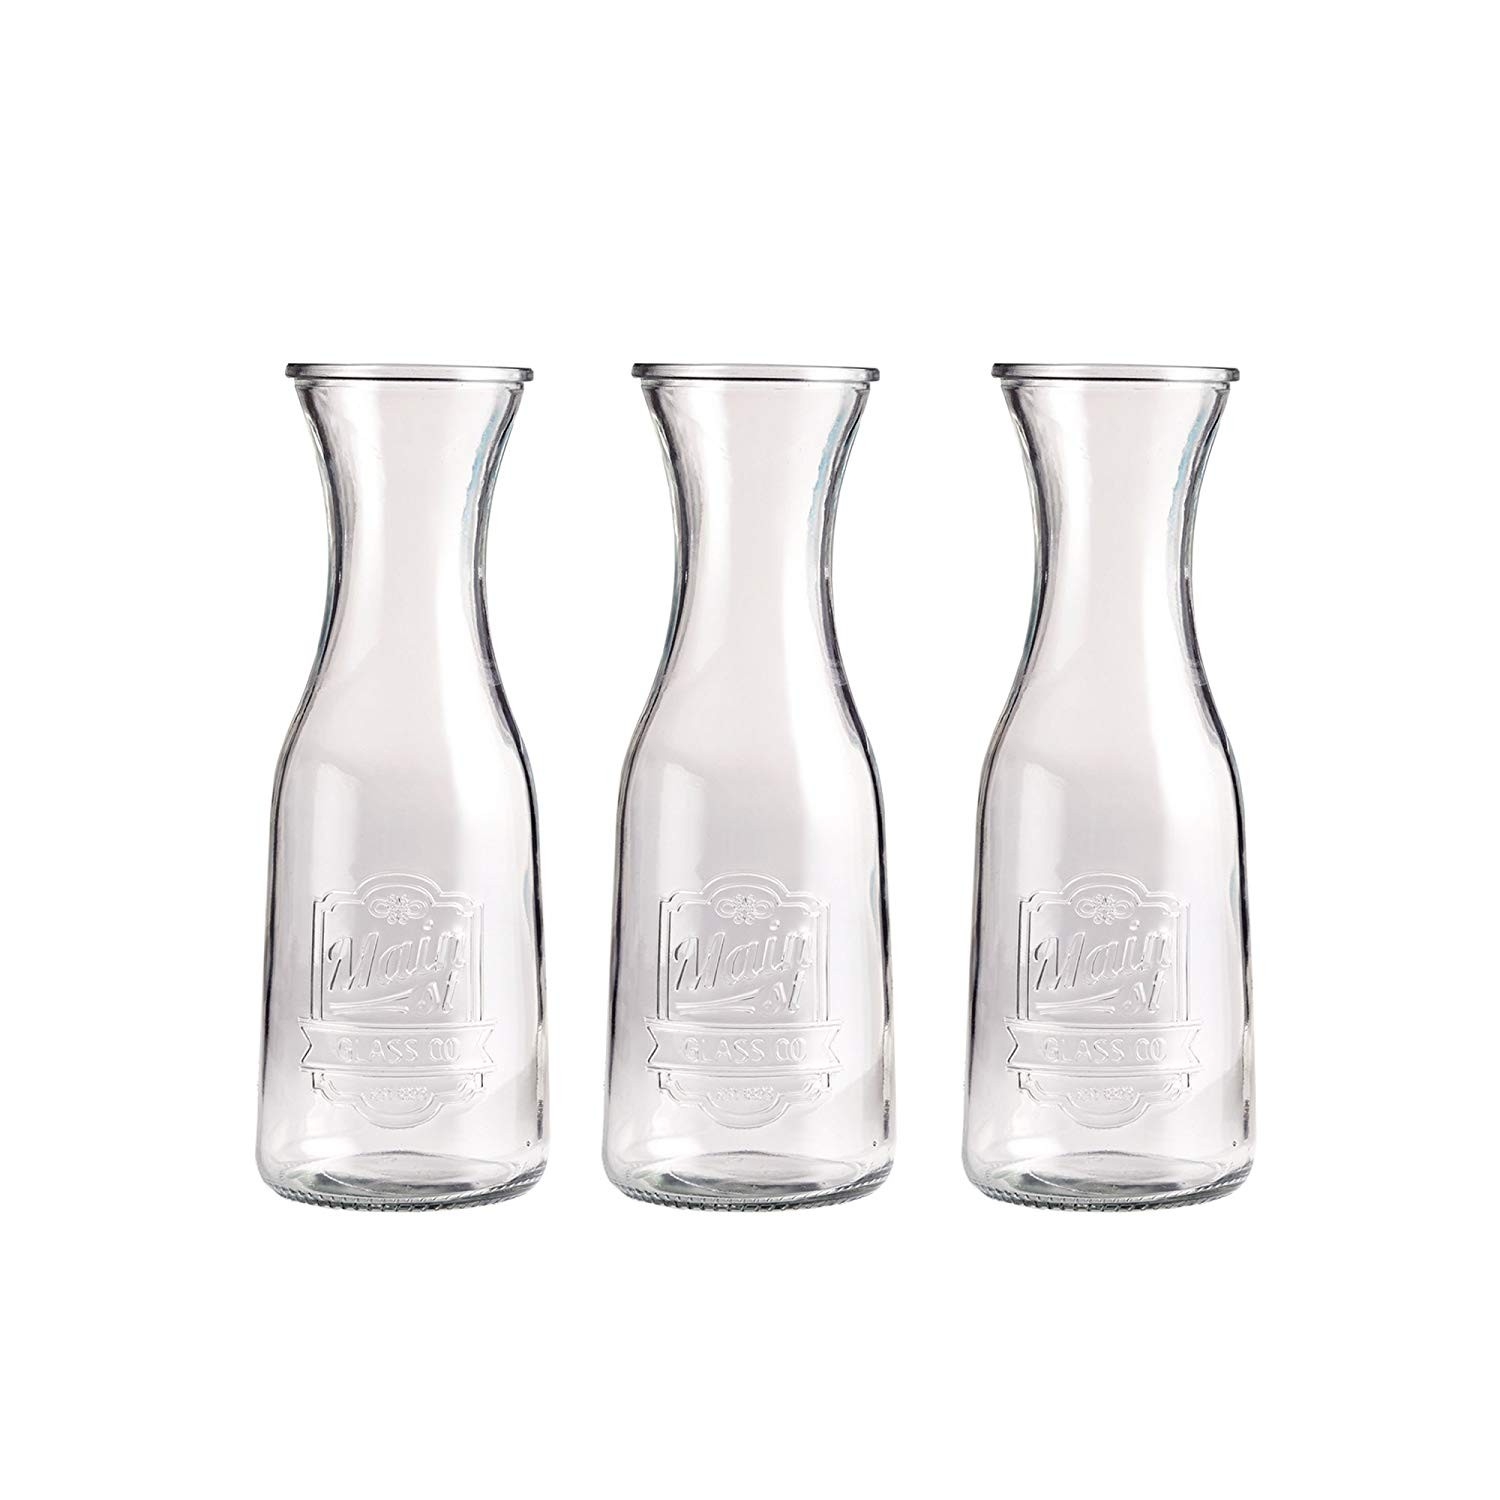 Style Setter Main Street Glass Pitchers, Clear, 2.9 x 7.6""